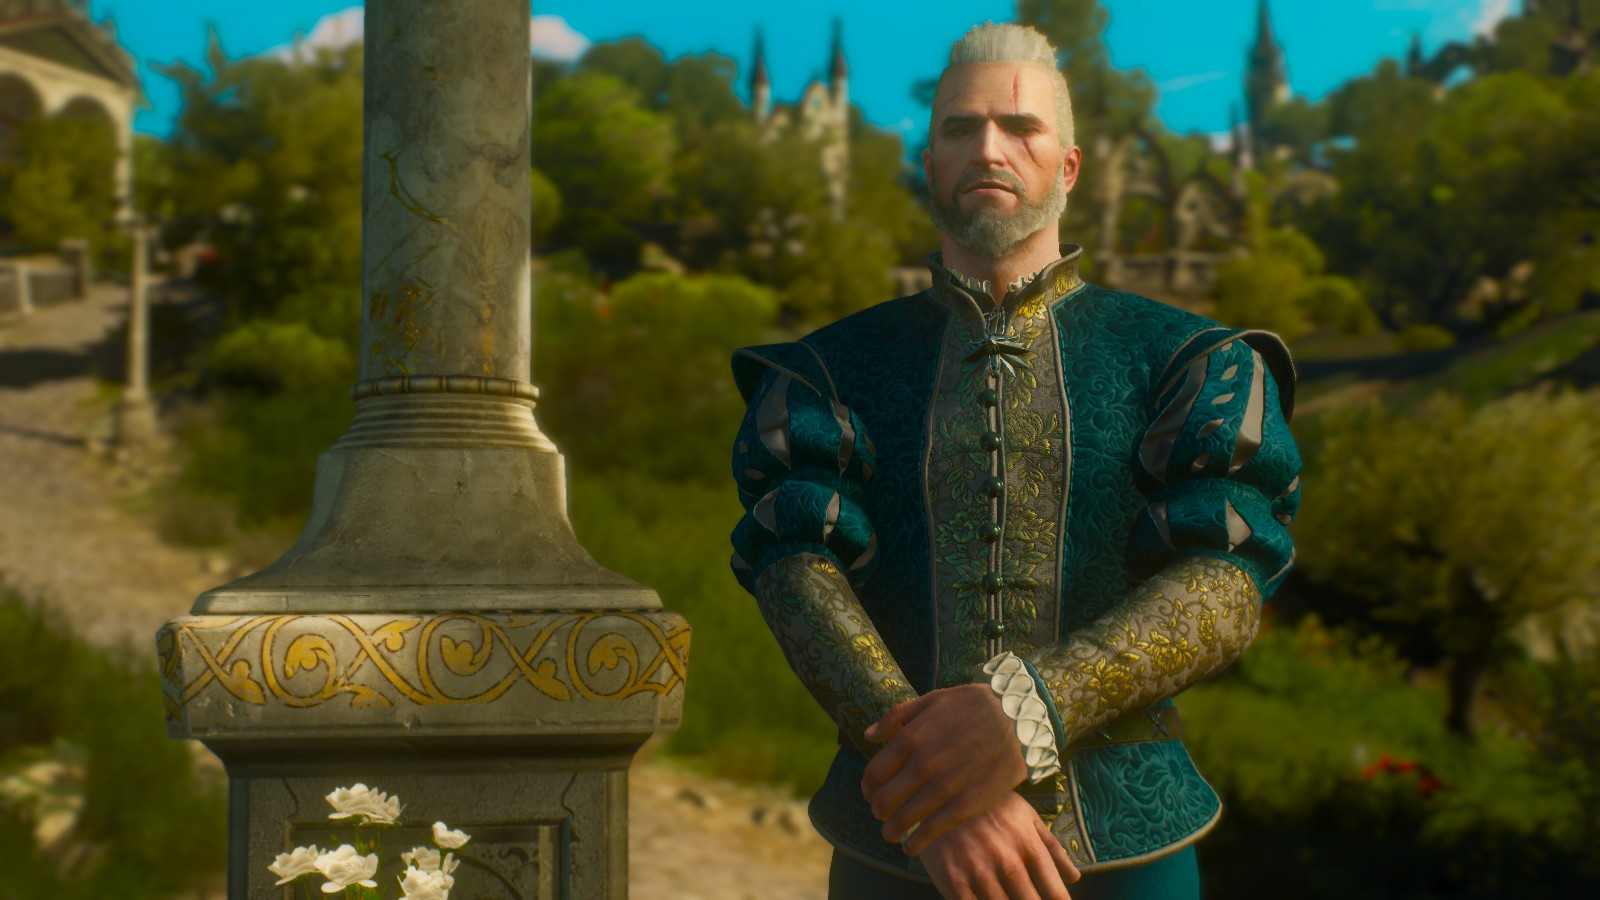 20180627221427_1.jpg - Witcher 3: Wild Hunt, the